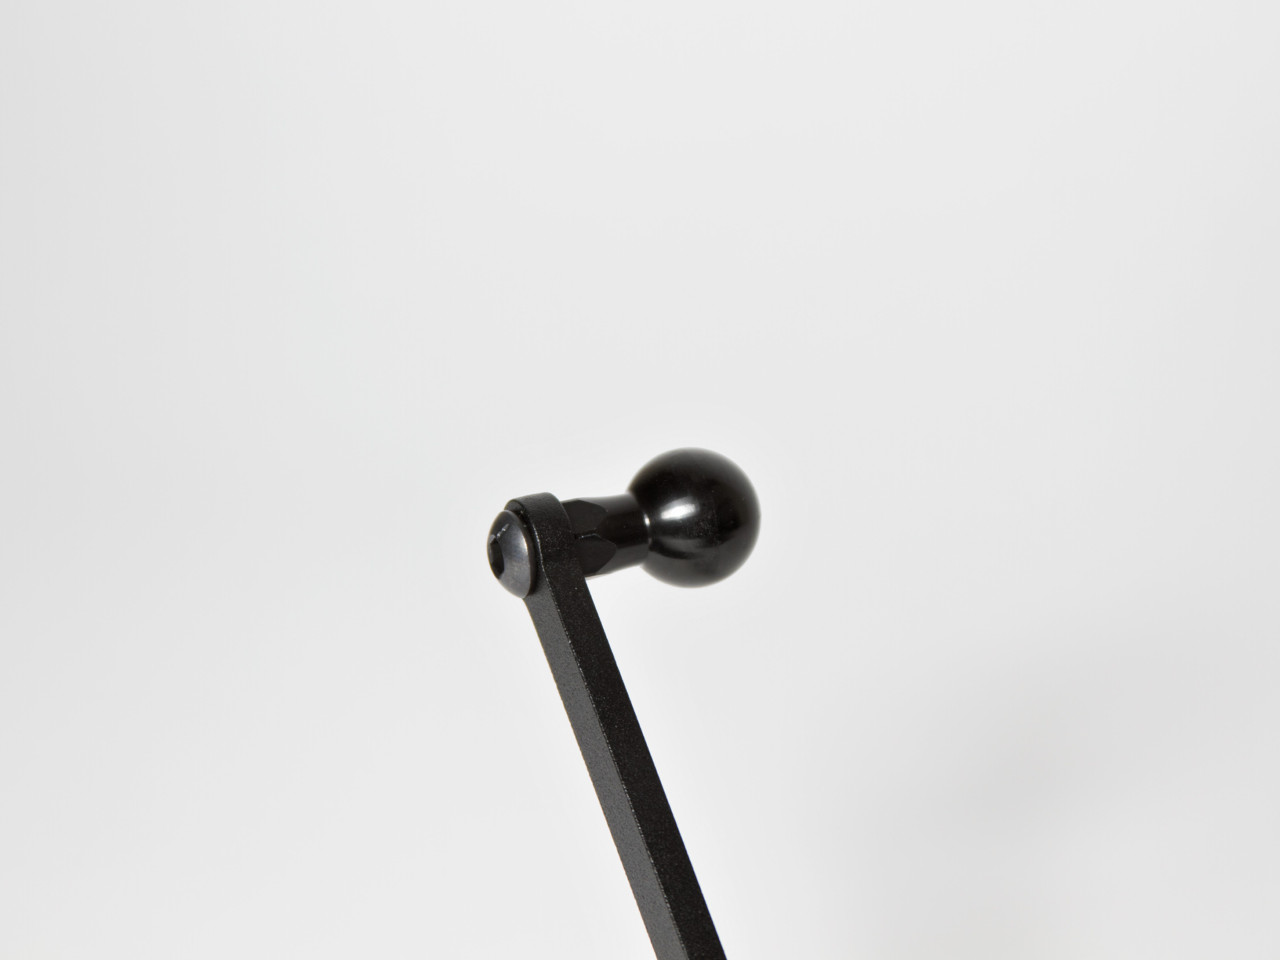 The ball socket on the CravenSpeed Gemini Phone Mount.